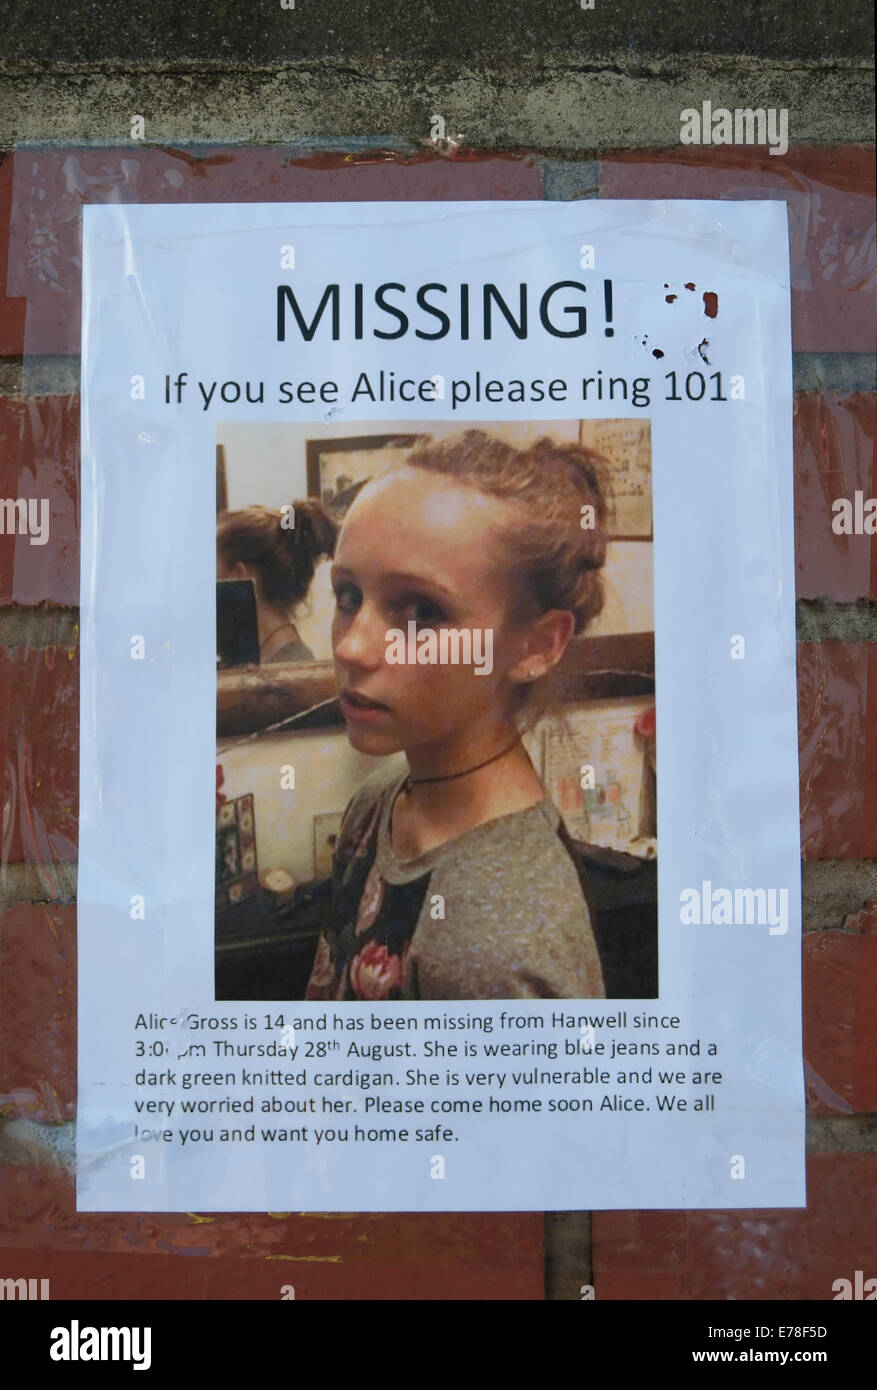 Missing Person Flyer For Alice Gross, Richmond Upon Thames, Surrey, England  Missing Person Flyer